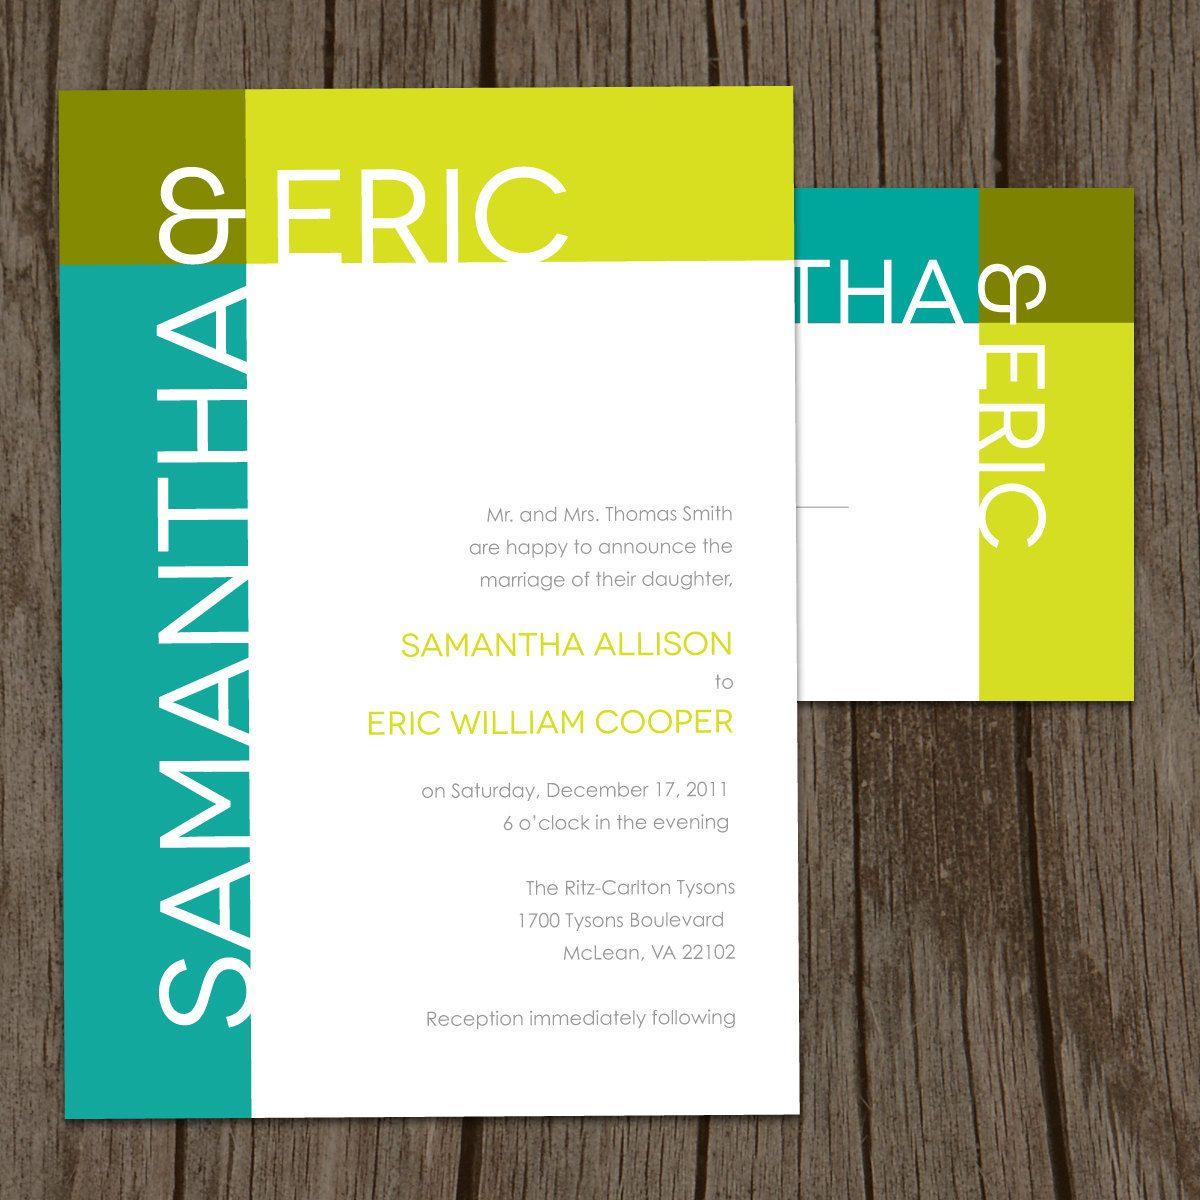 Software Wedding Invitations: Add To Your Save The Date, Wedding